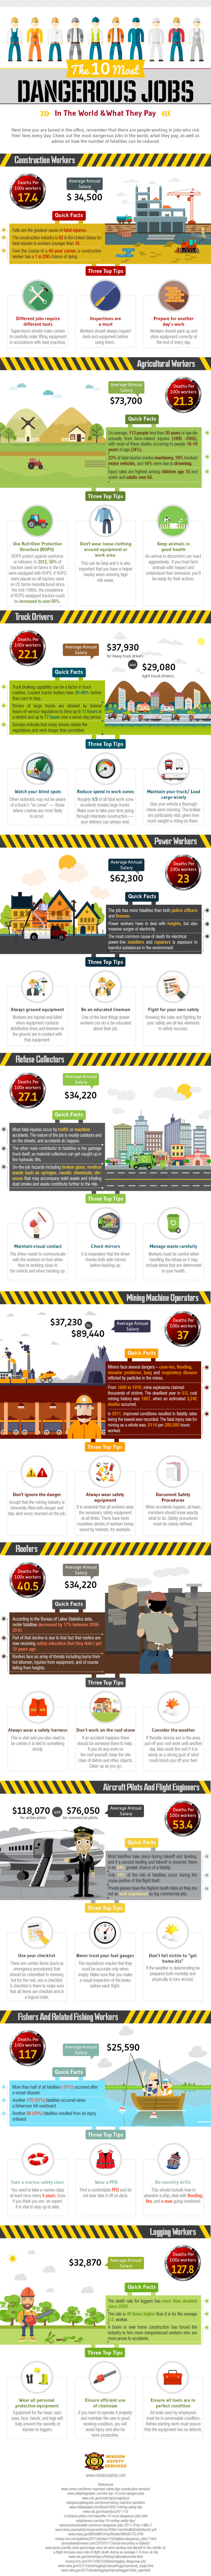 The 10 Most Dangerous Jobs in the World & What They Pay - An infographic